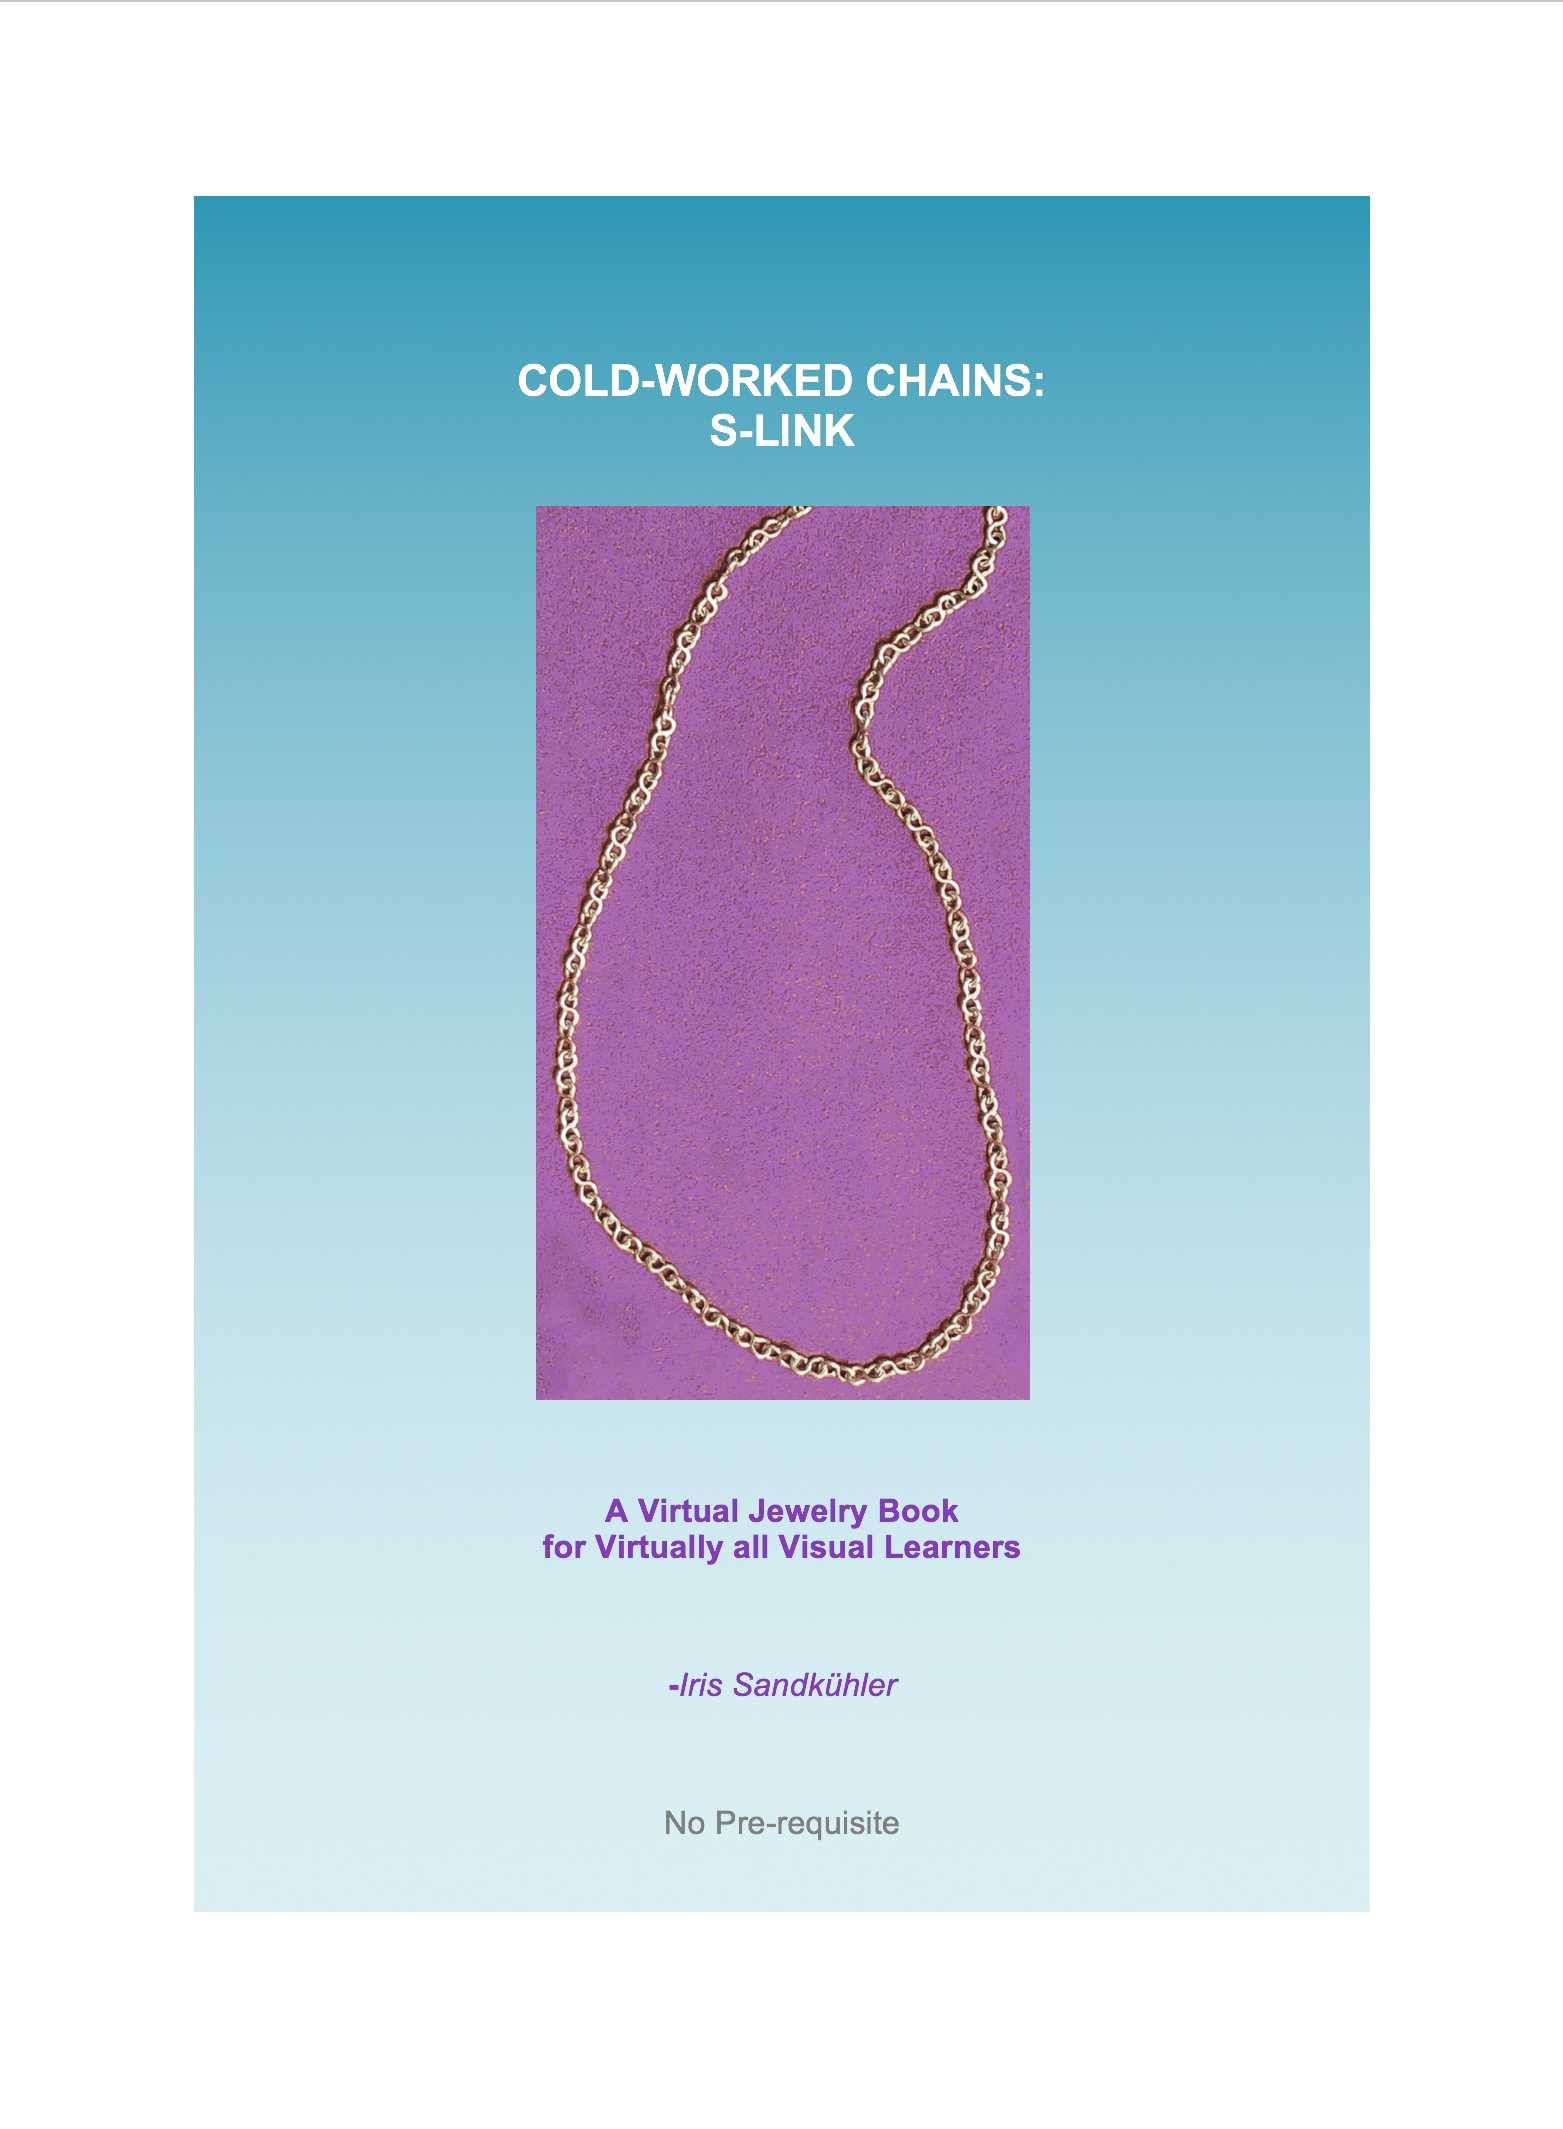 Cold-Worked Chains: S-Link. A downloadable step-by-step-jewelry-making book